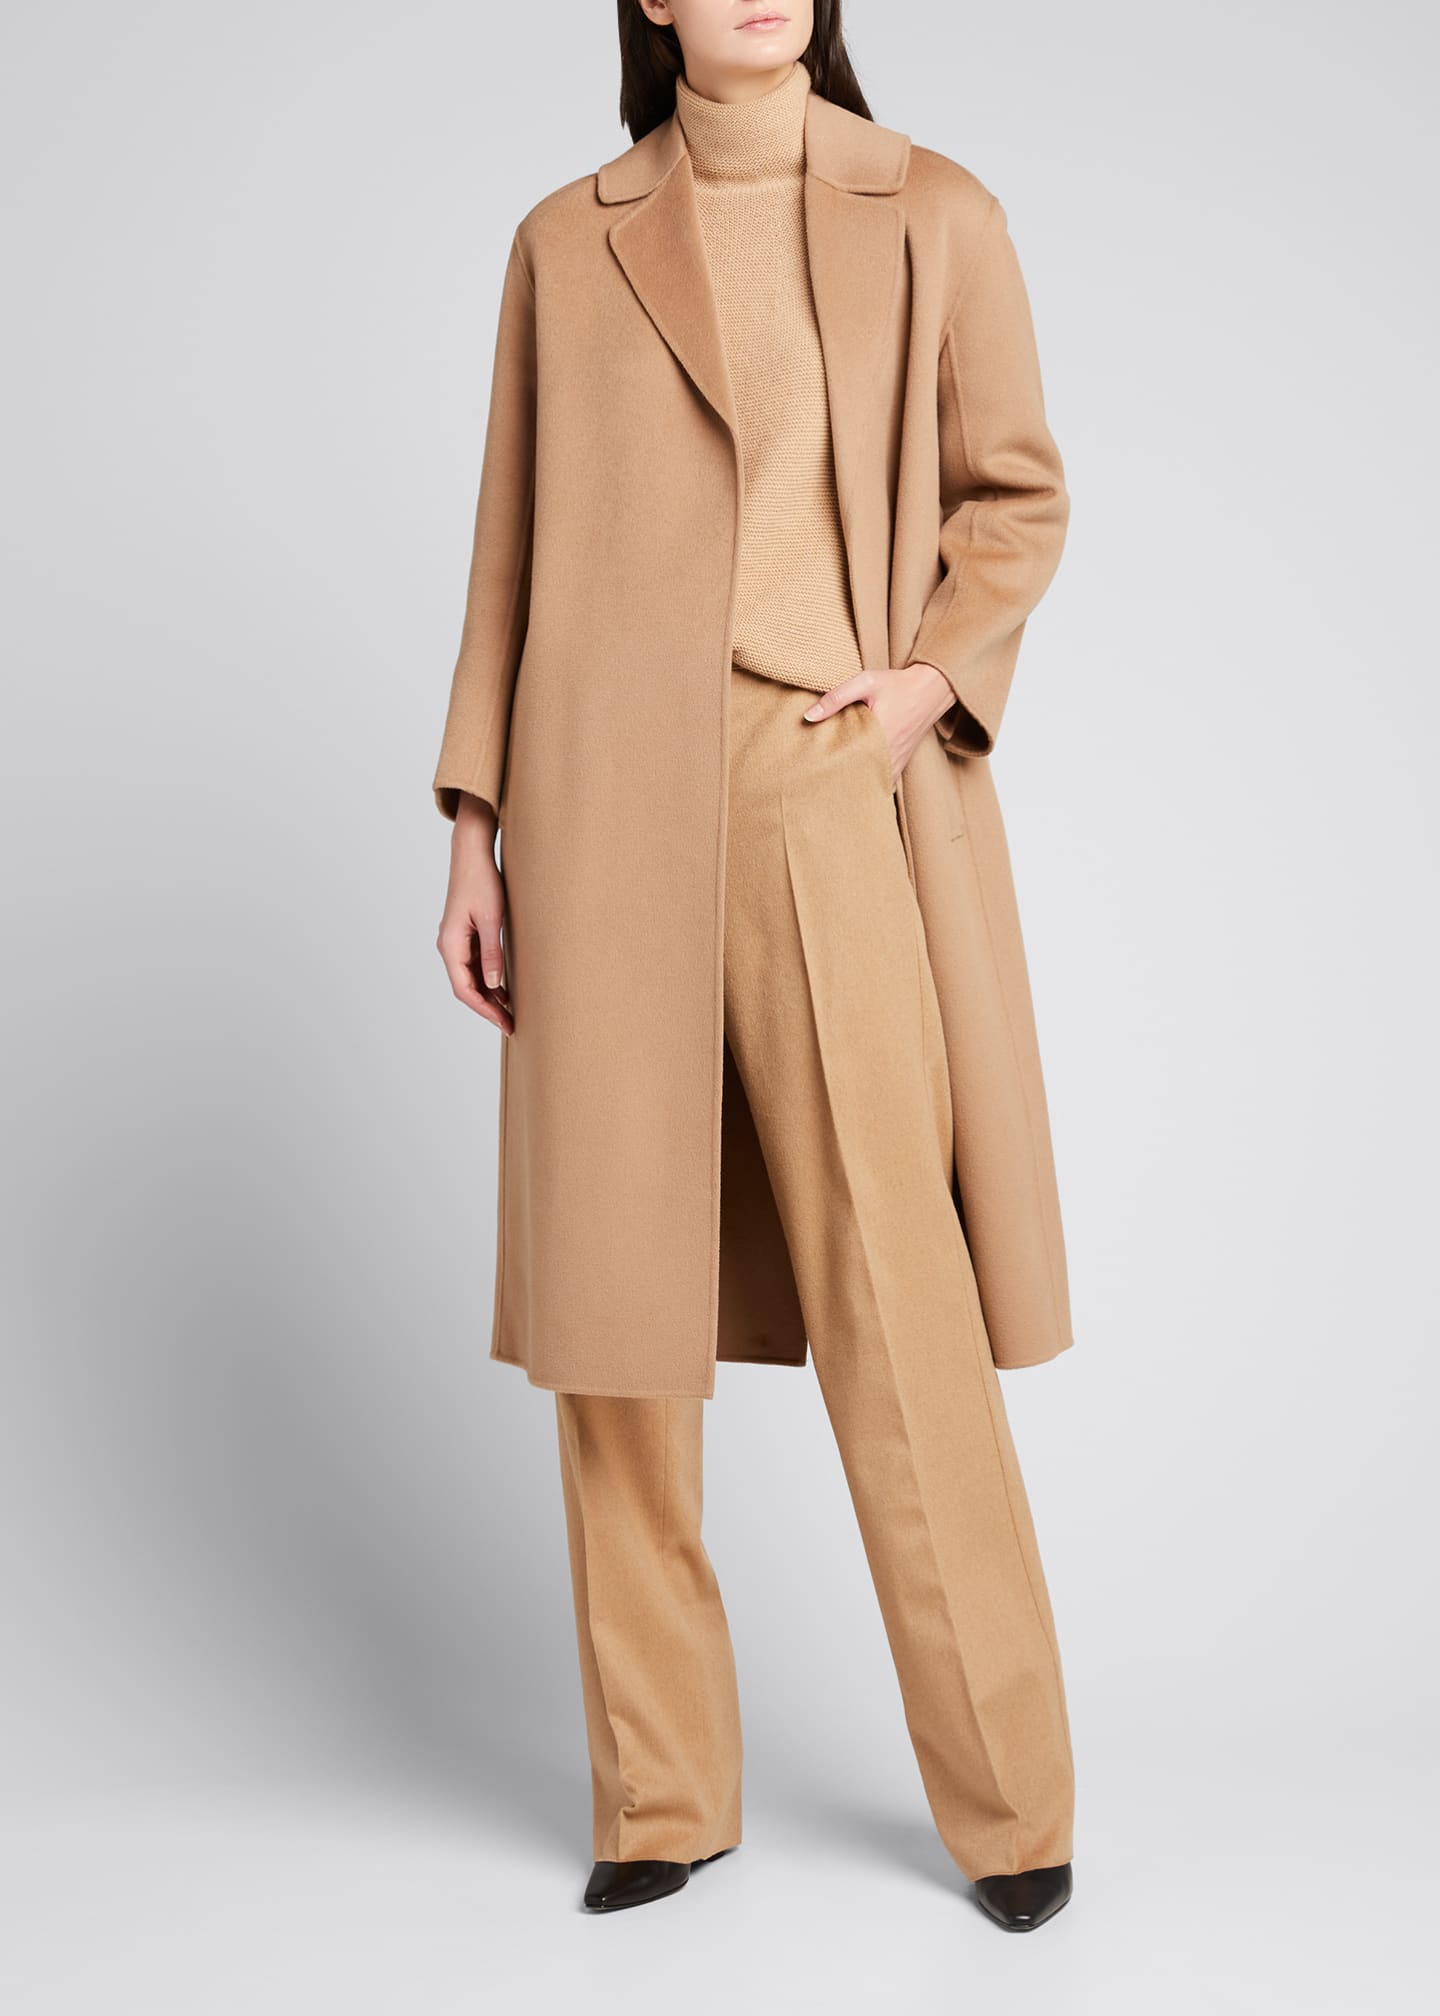 Lugano Virgin Wool Belted Coat, Beige